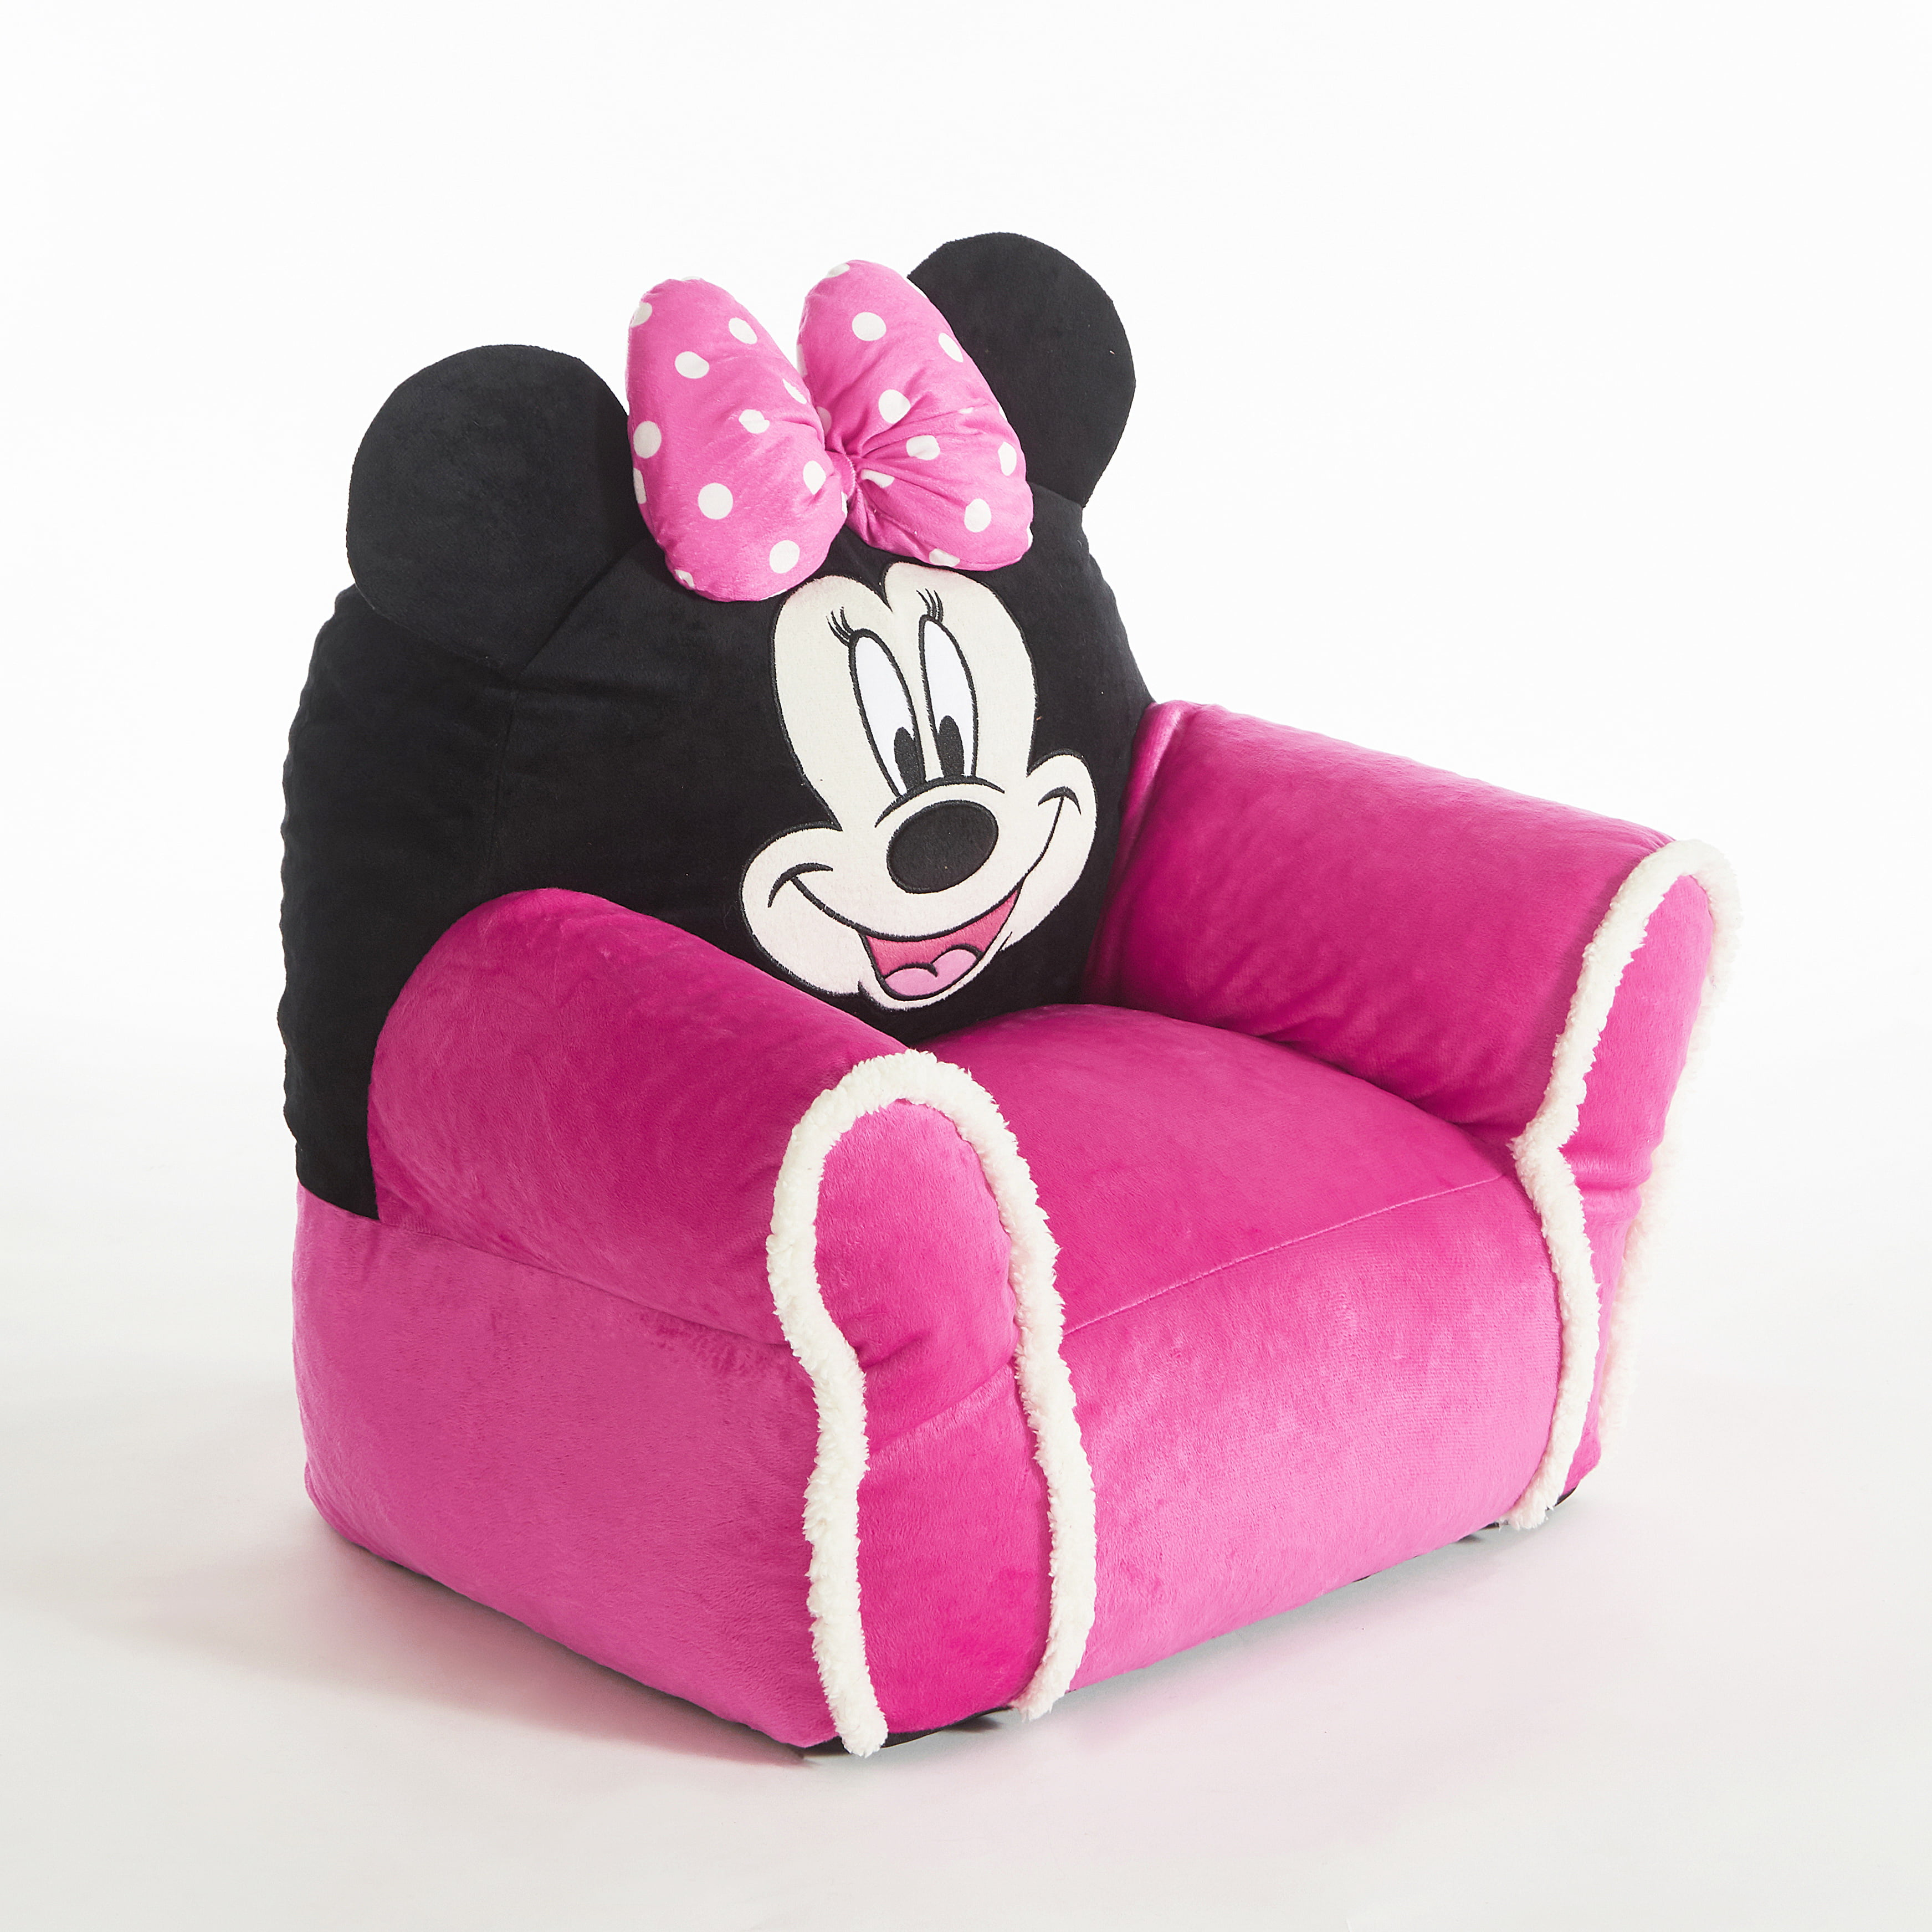 Disney Minnie Mouse Kids Figural Bean Bag with Sherpa Trimming